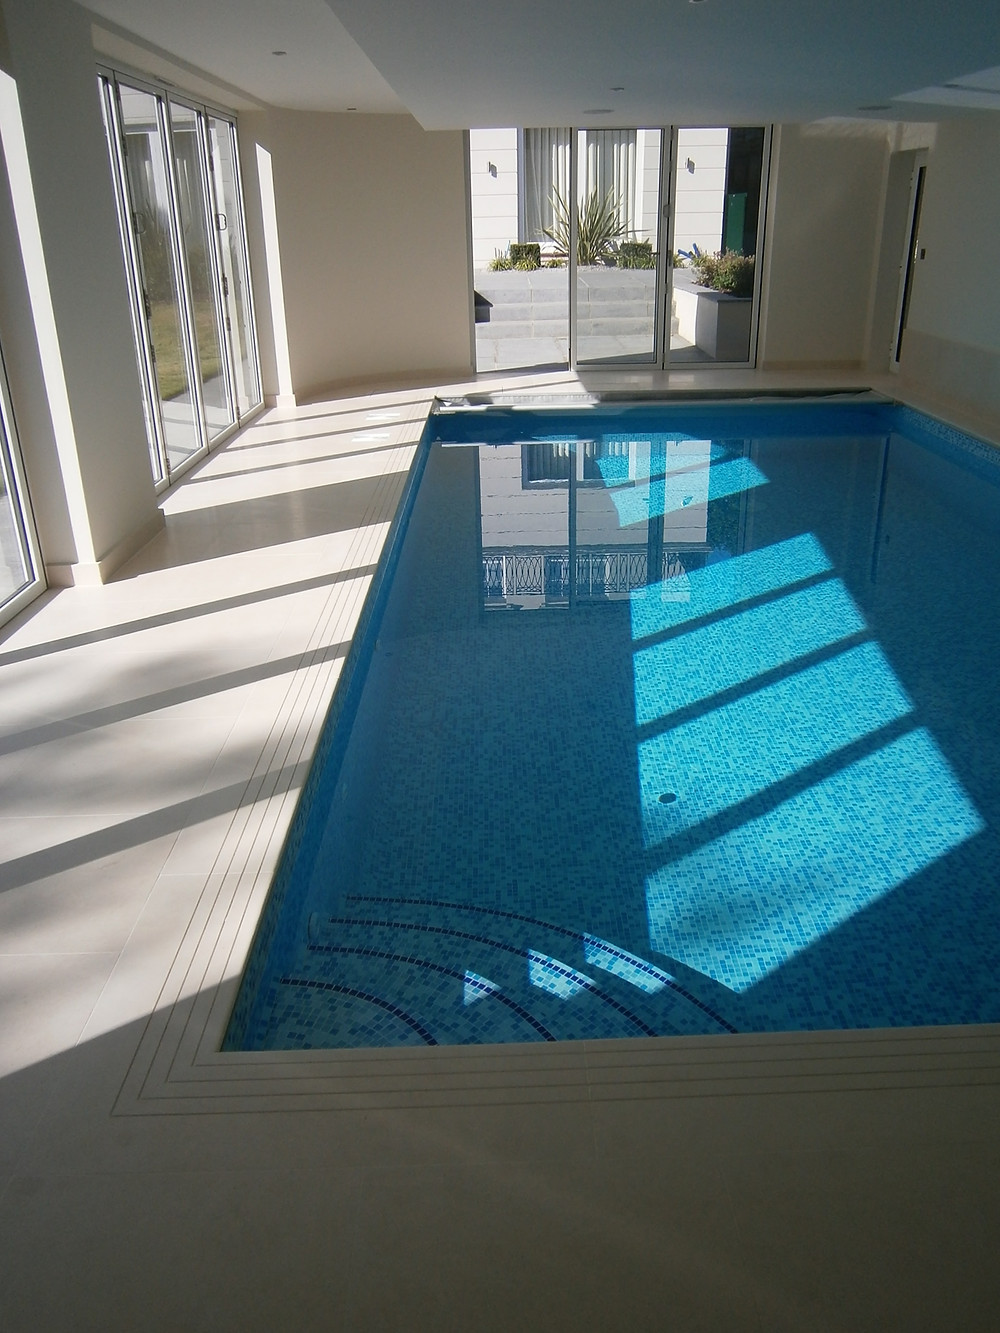 Indoor pool with automatic cover